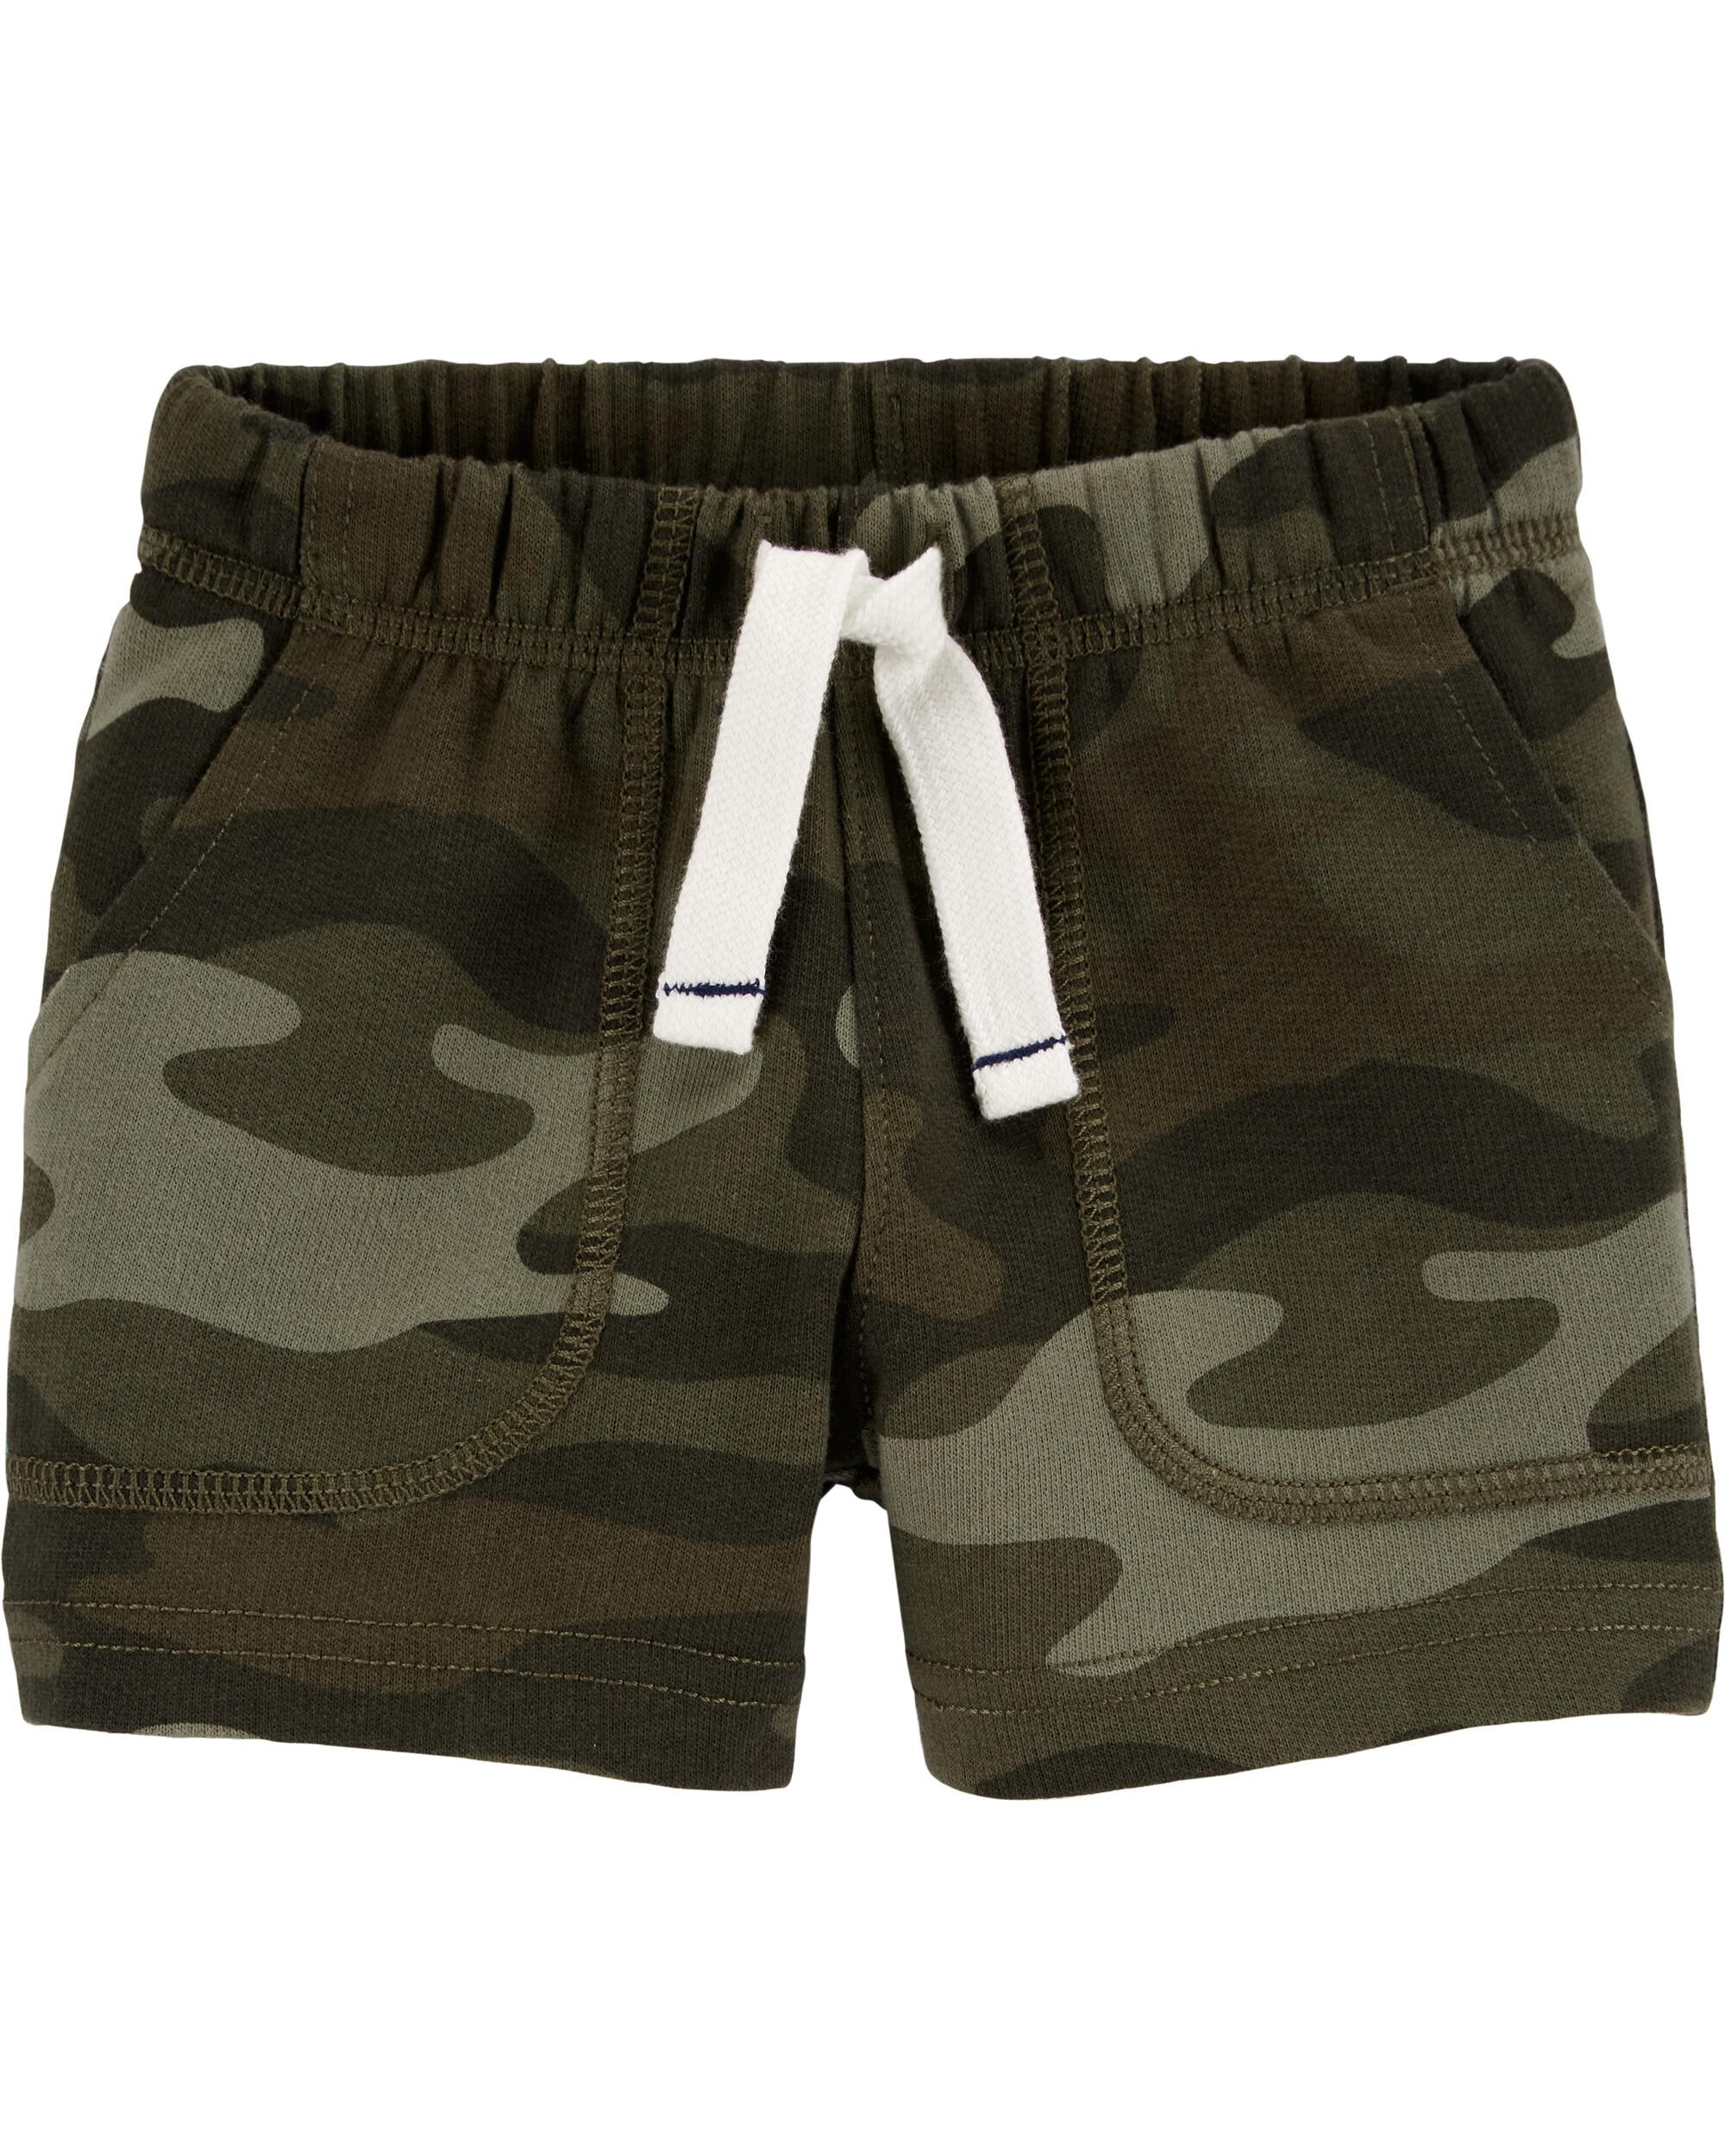 *DOORBUSTER* Camo Pull-On French Terry Shorts